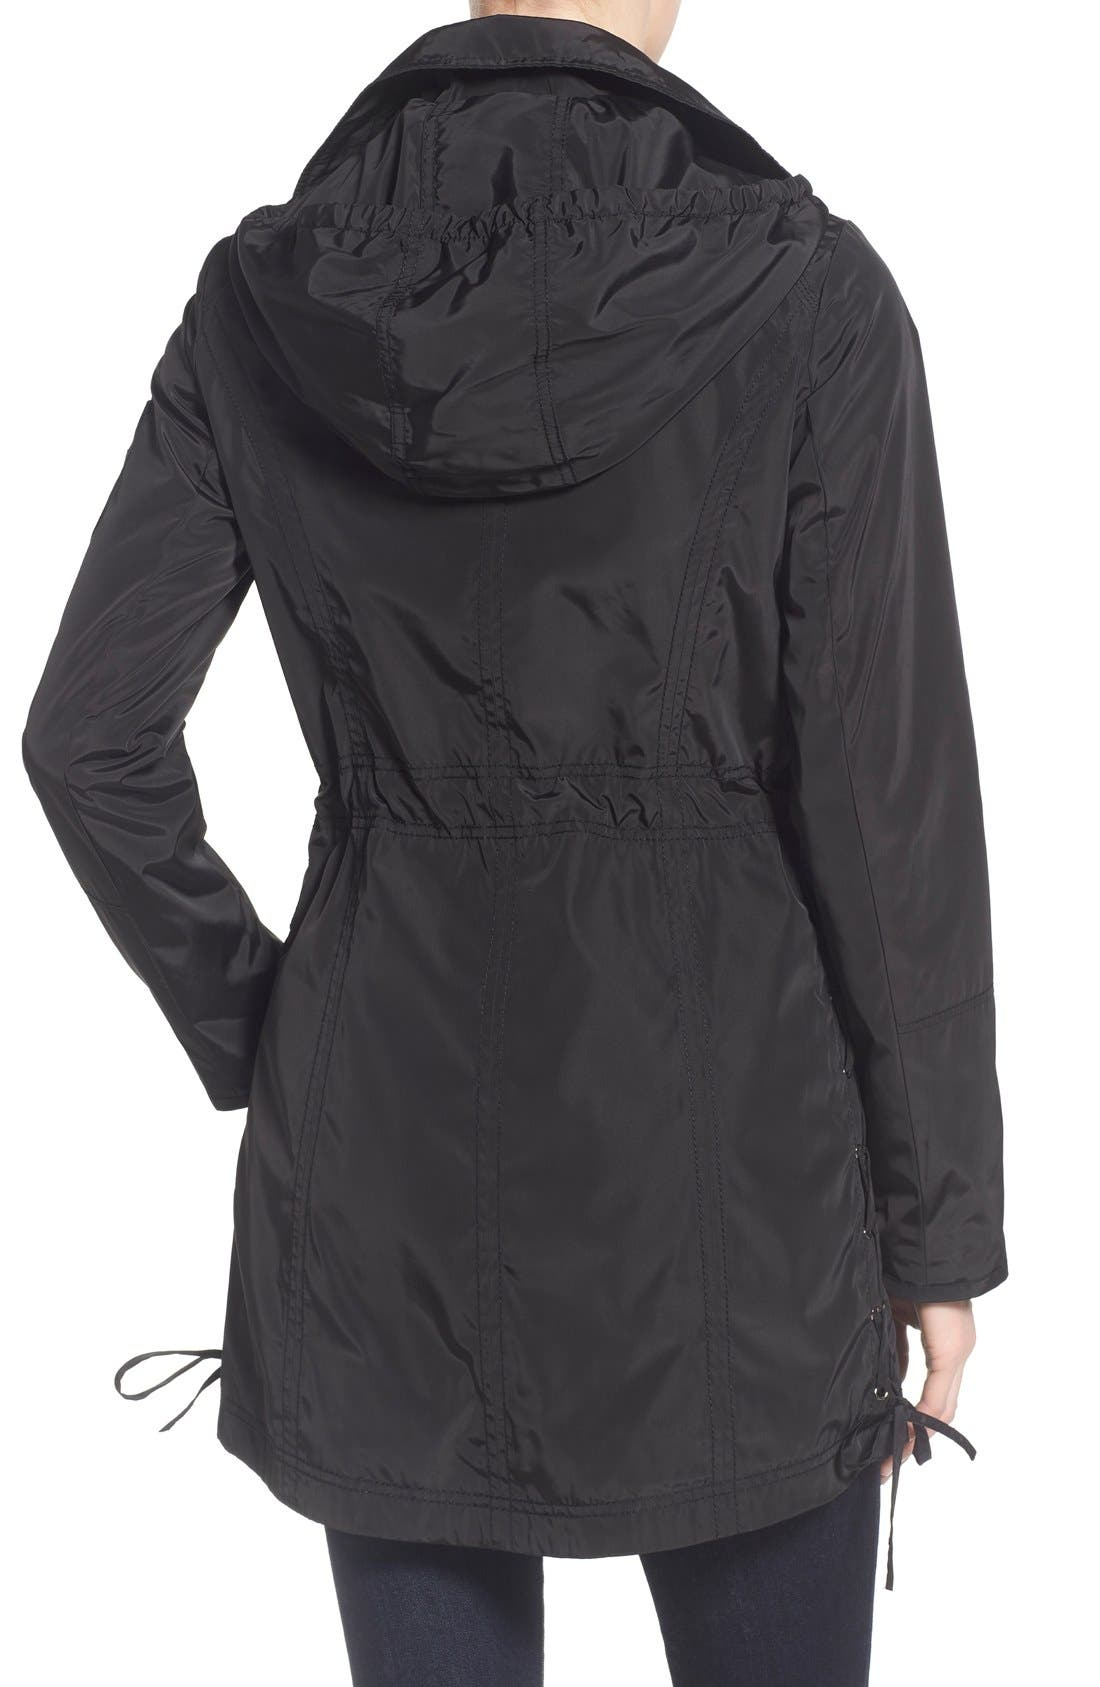 Windbreaker with Lace-Up Sides,                             Alternate thumbnail 2, color,                             001